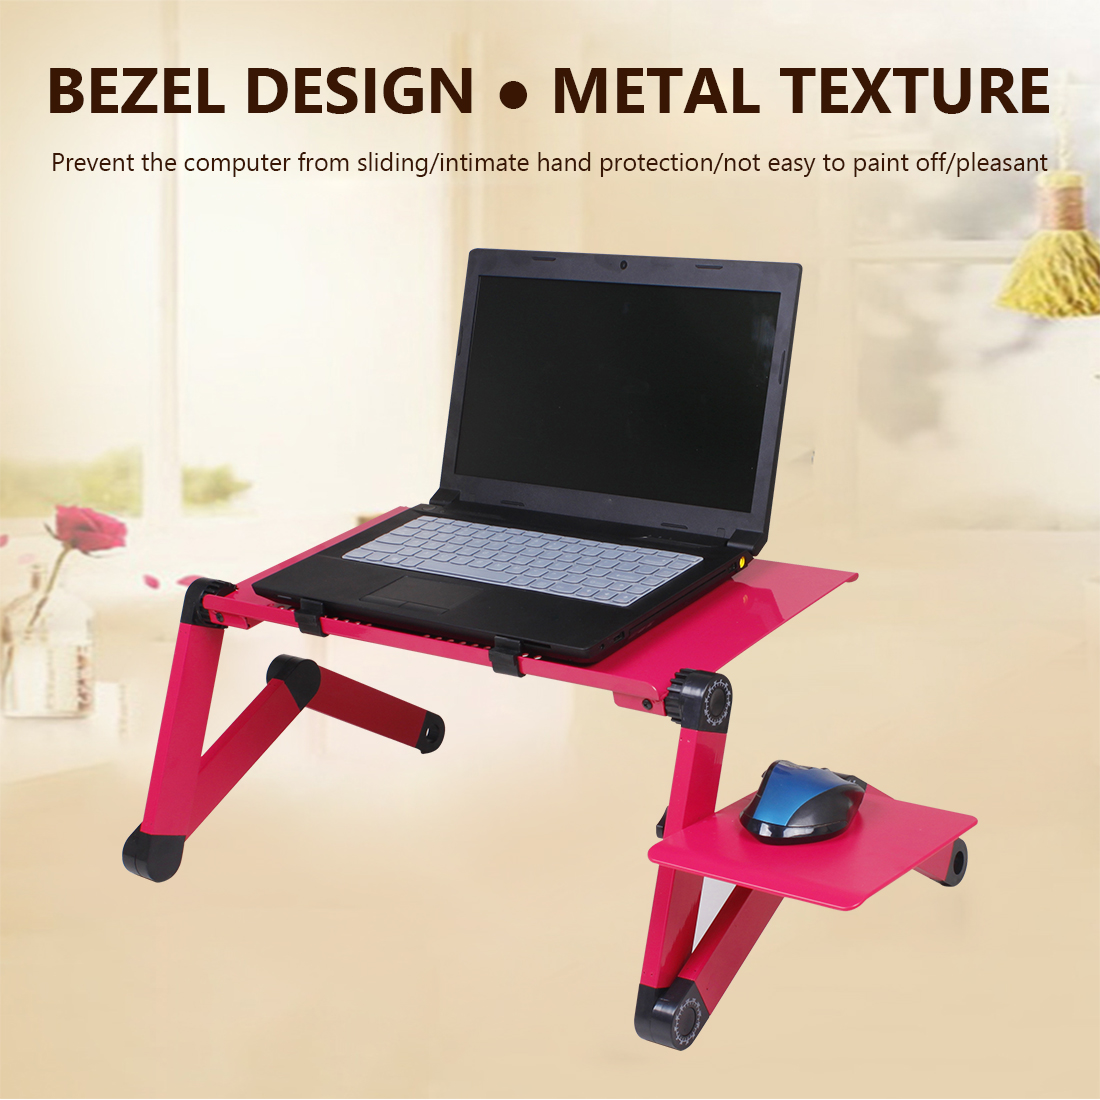 Folding Laptop Desk Adjustable Laptop Table Ergonomic Laptop Desk Tray Portable Notebook Table Desk PC Stand For Sofa Bed